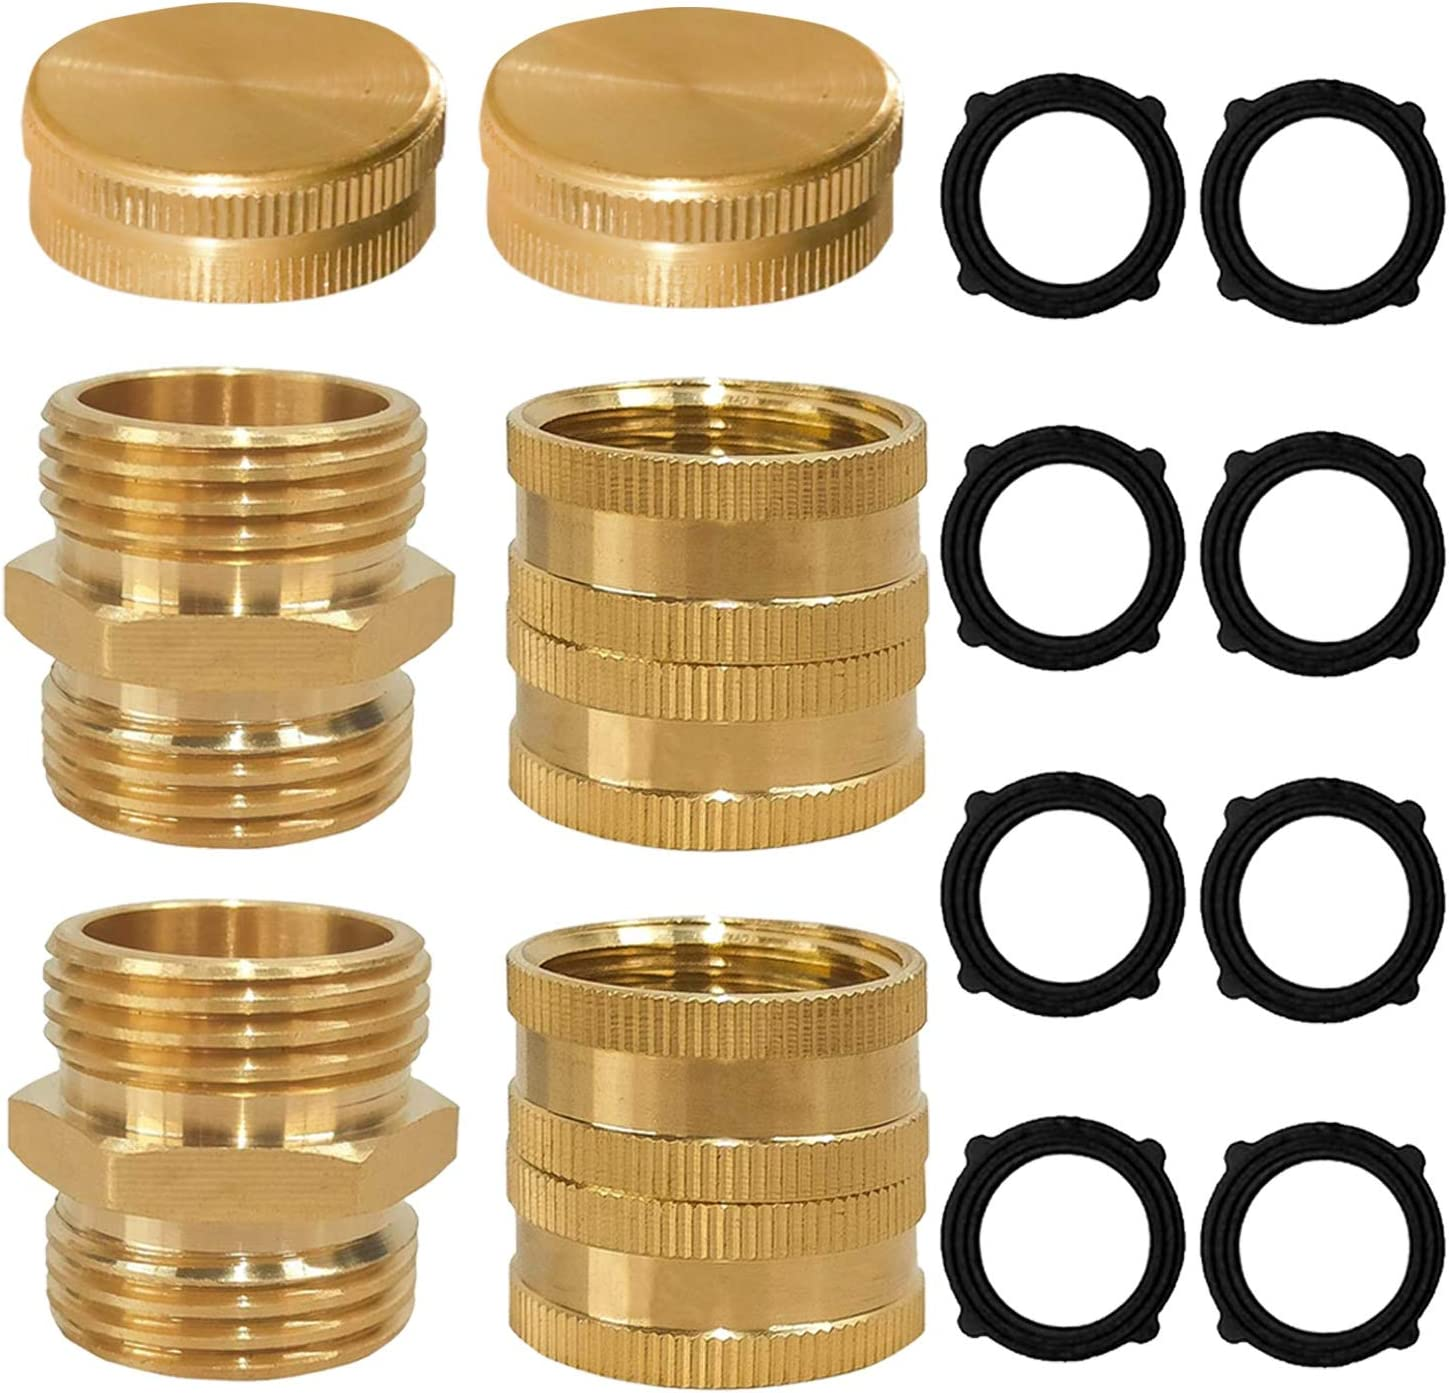 "Xiny Tool Garden Hose Adapter, 3/4"" Solid Brass Hose Connectors and Hose Ends, Male to Male, Female to Female, 3/4 Inch Brass Connector, 6-Pack with Extra 4 Washers"